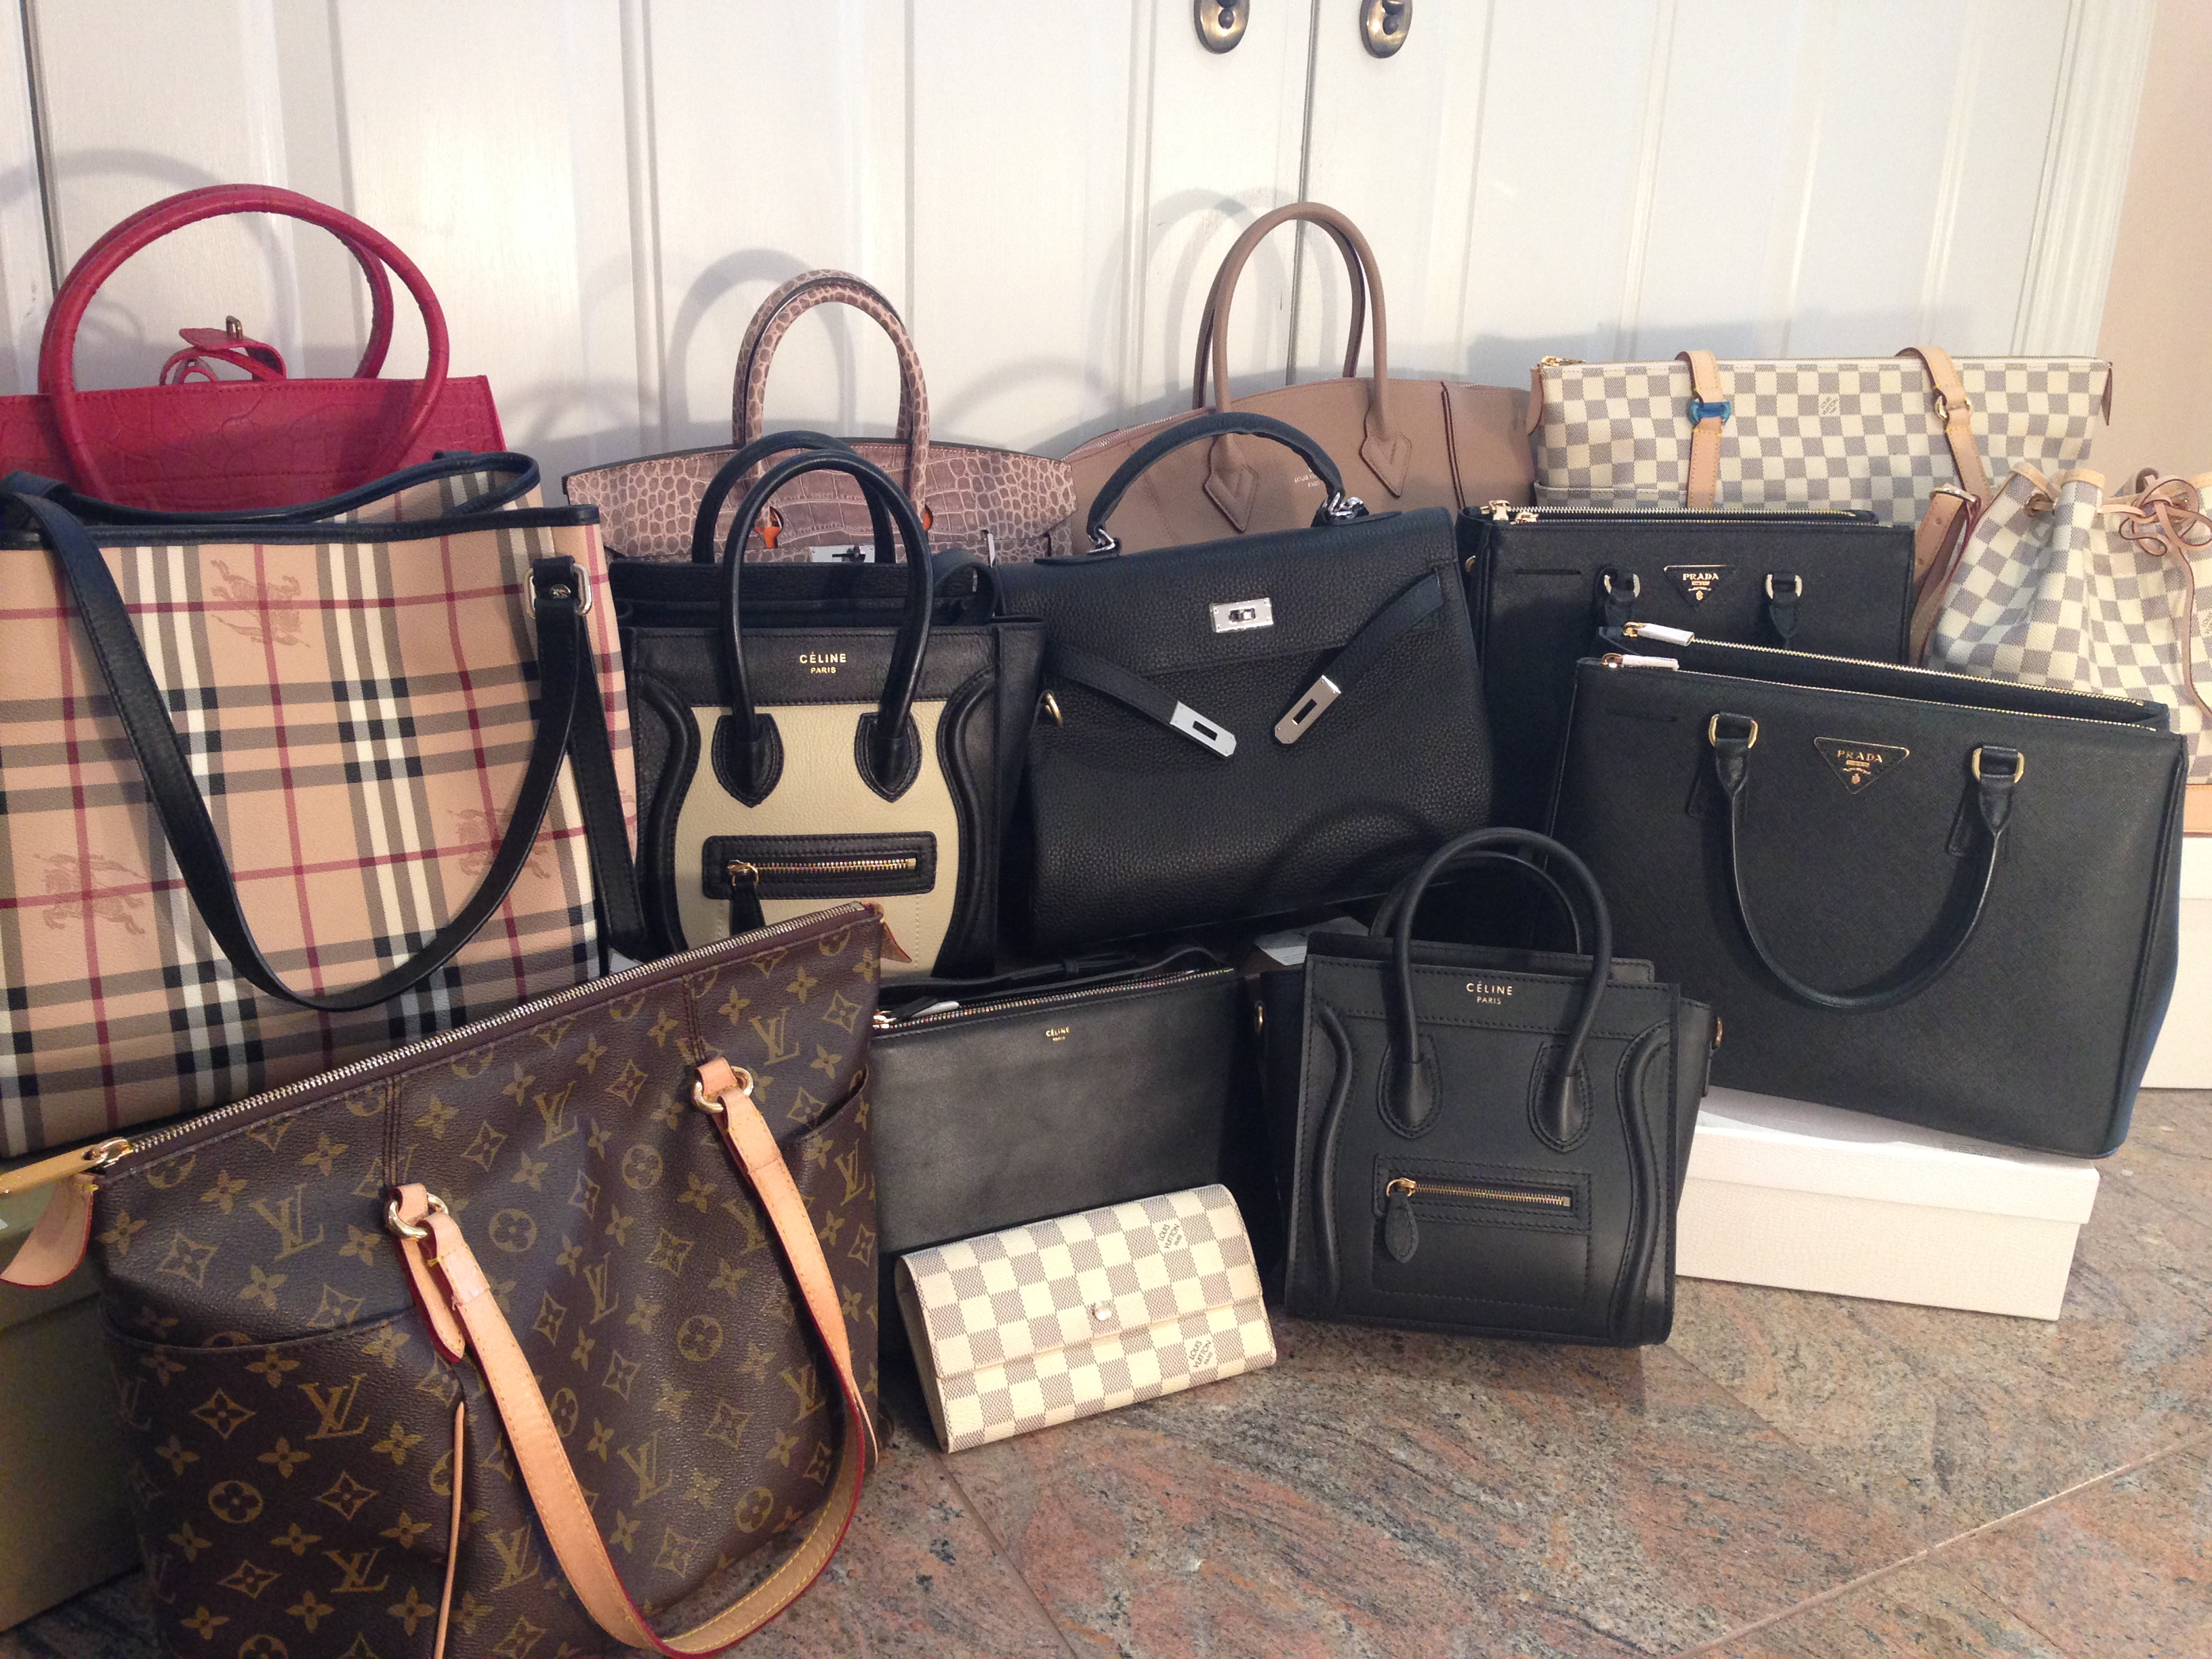 knock off hermes purse party - RECOMMENDED REPLICA SELLERS LIST �C Authentic & Replica Bags ...